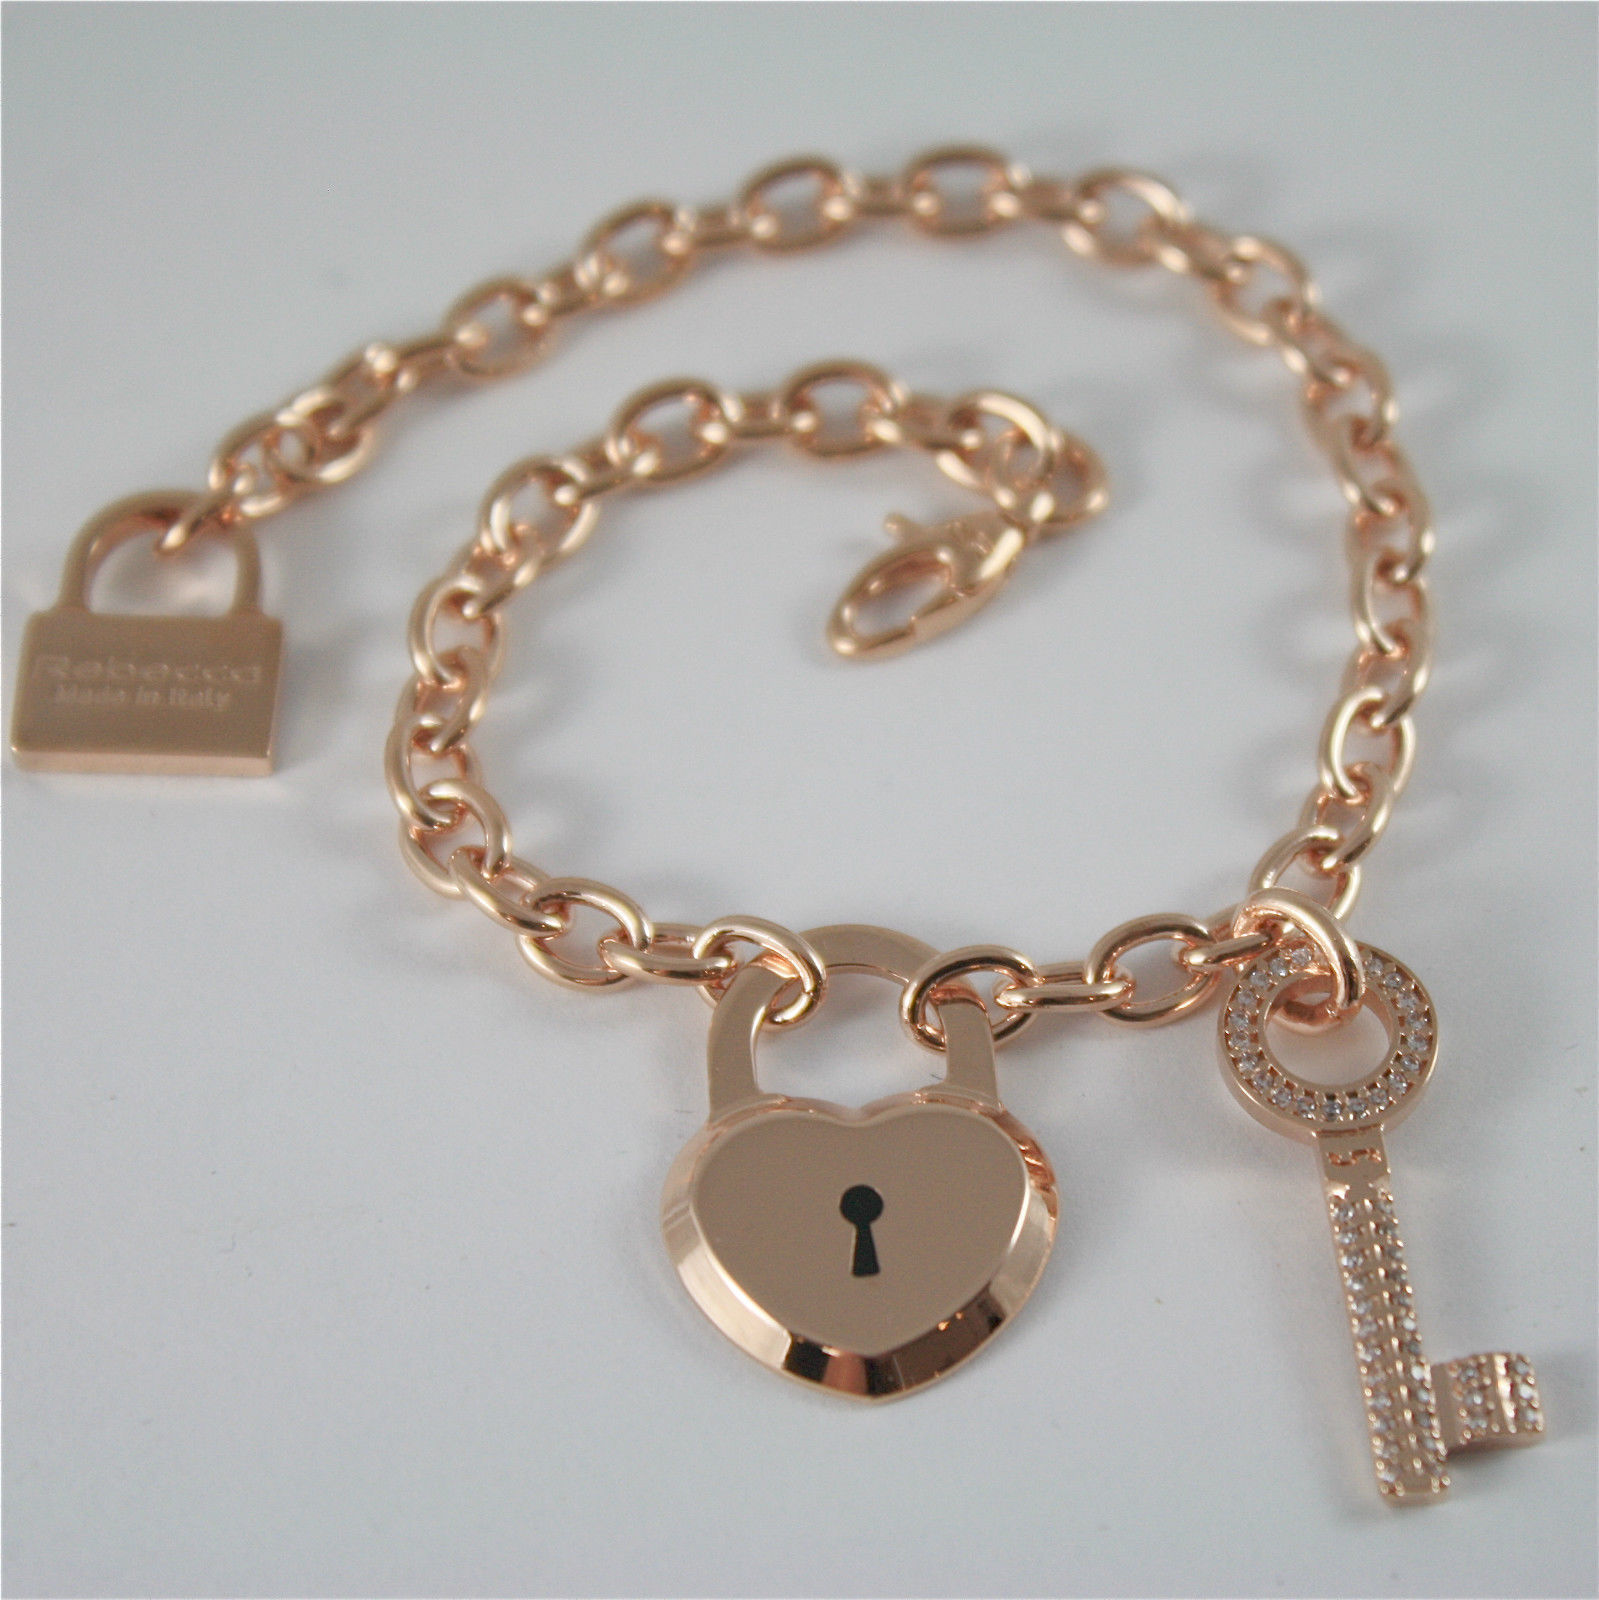 ROSE GOLD PLATED BRONZE REBECCA BRACELET LOVE LOCK BLLBRB72 MADE IN ITALY 8.27